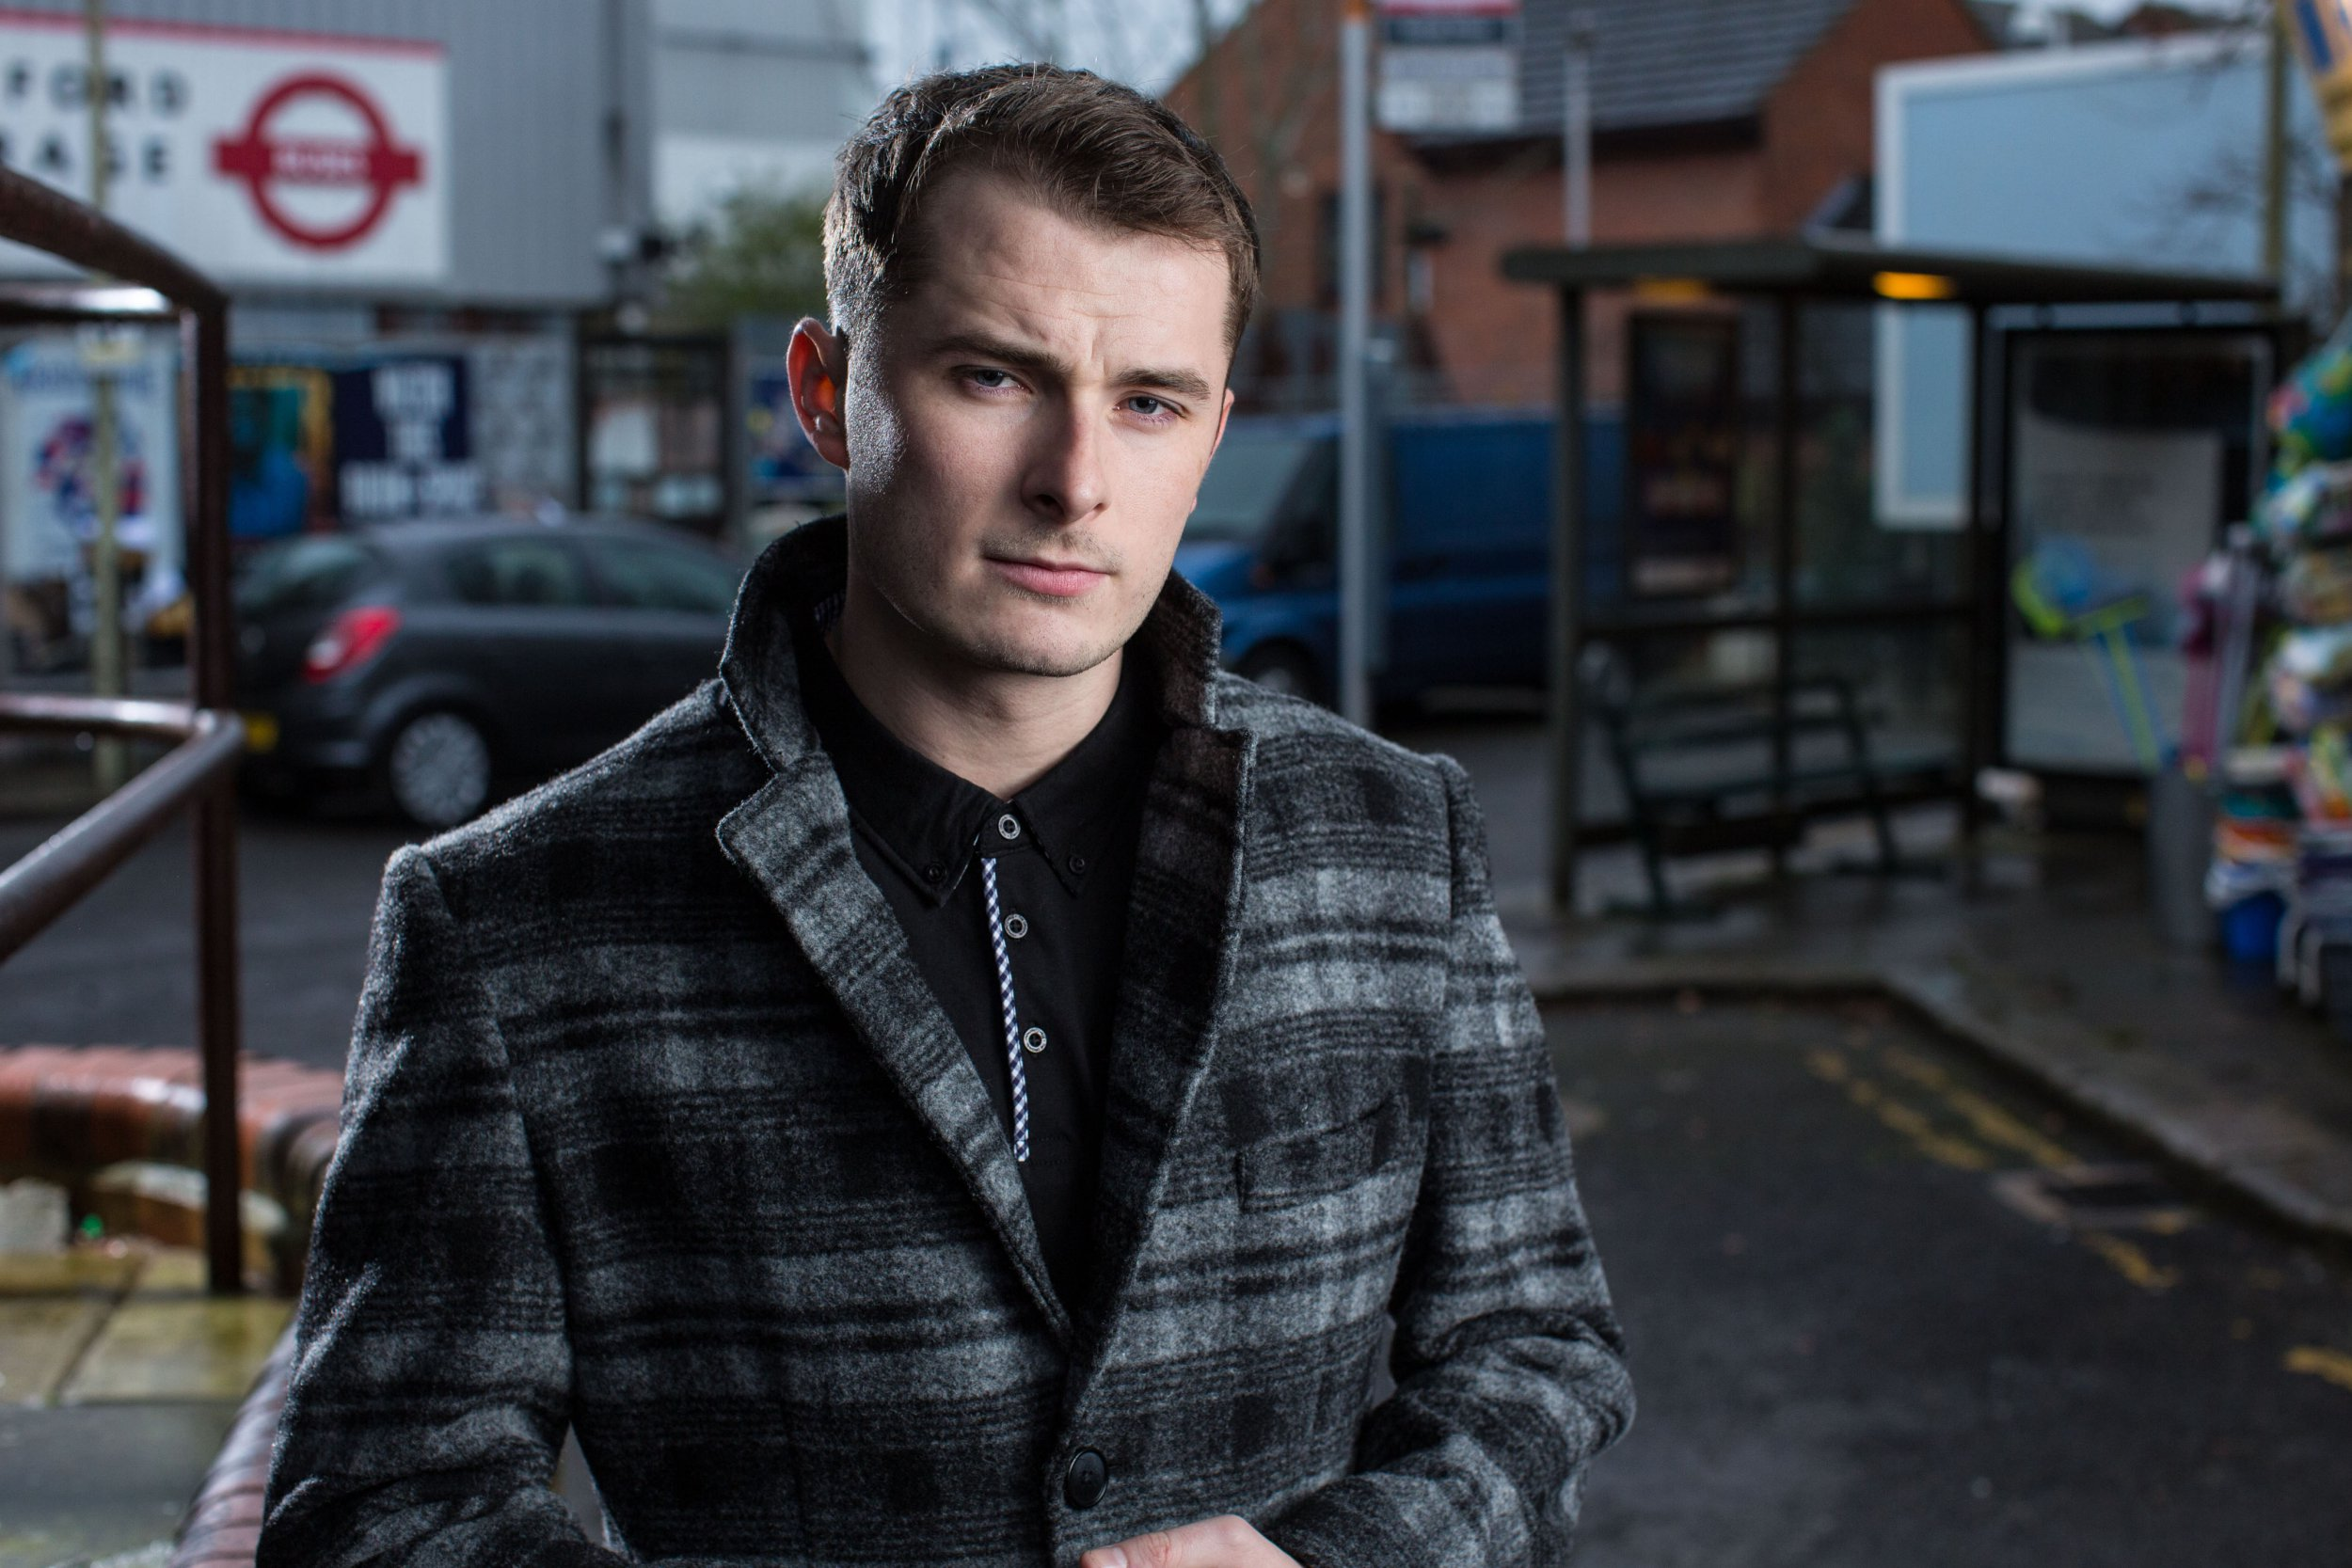 What's happened to Ben's glasses and hearing aid as he returns to EastEnders?